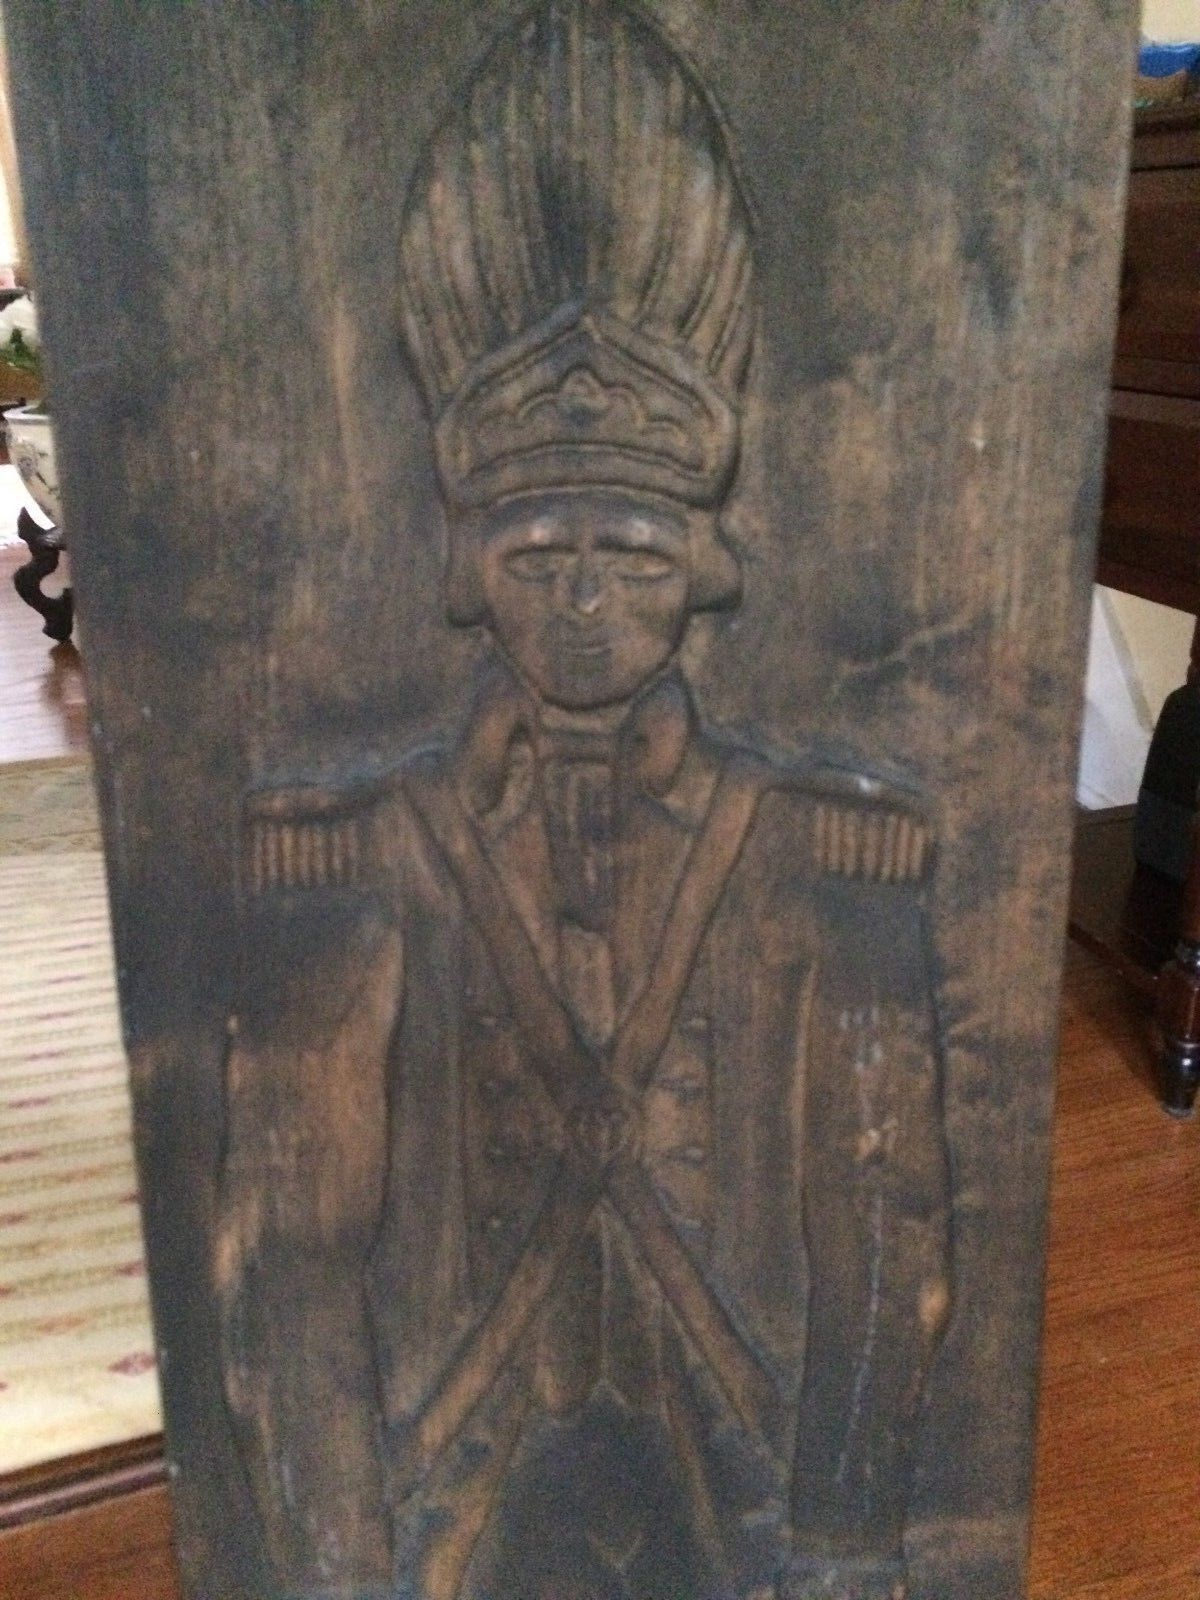 HAND CARVED WOOD ANTIQUE/VINTAGE SOLDIER WALL HANGING PLAQUE 3' TALL